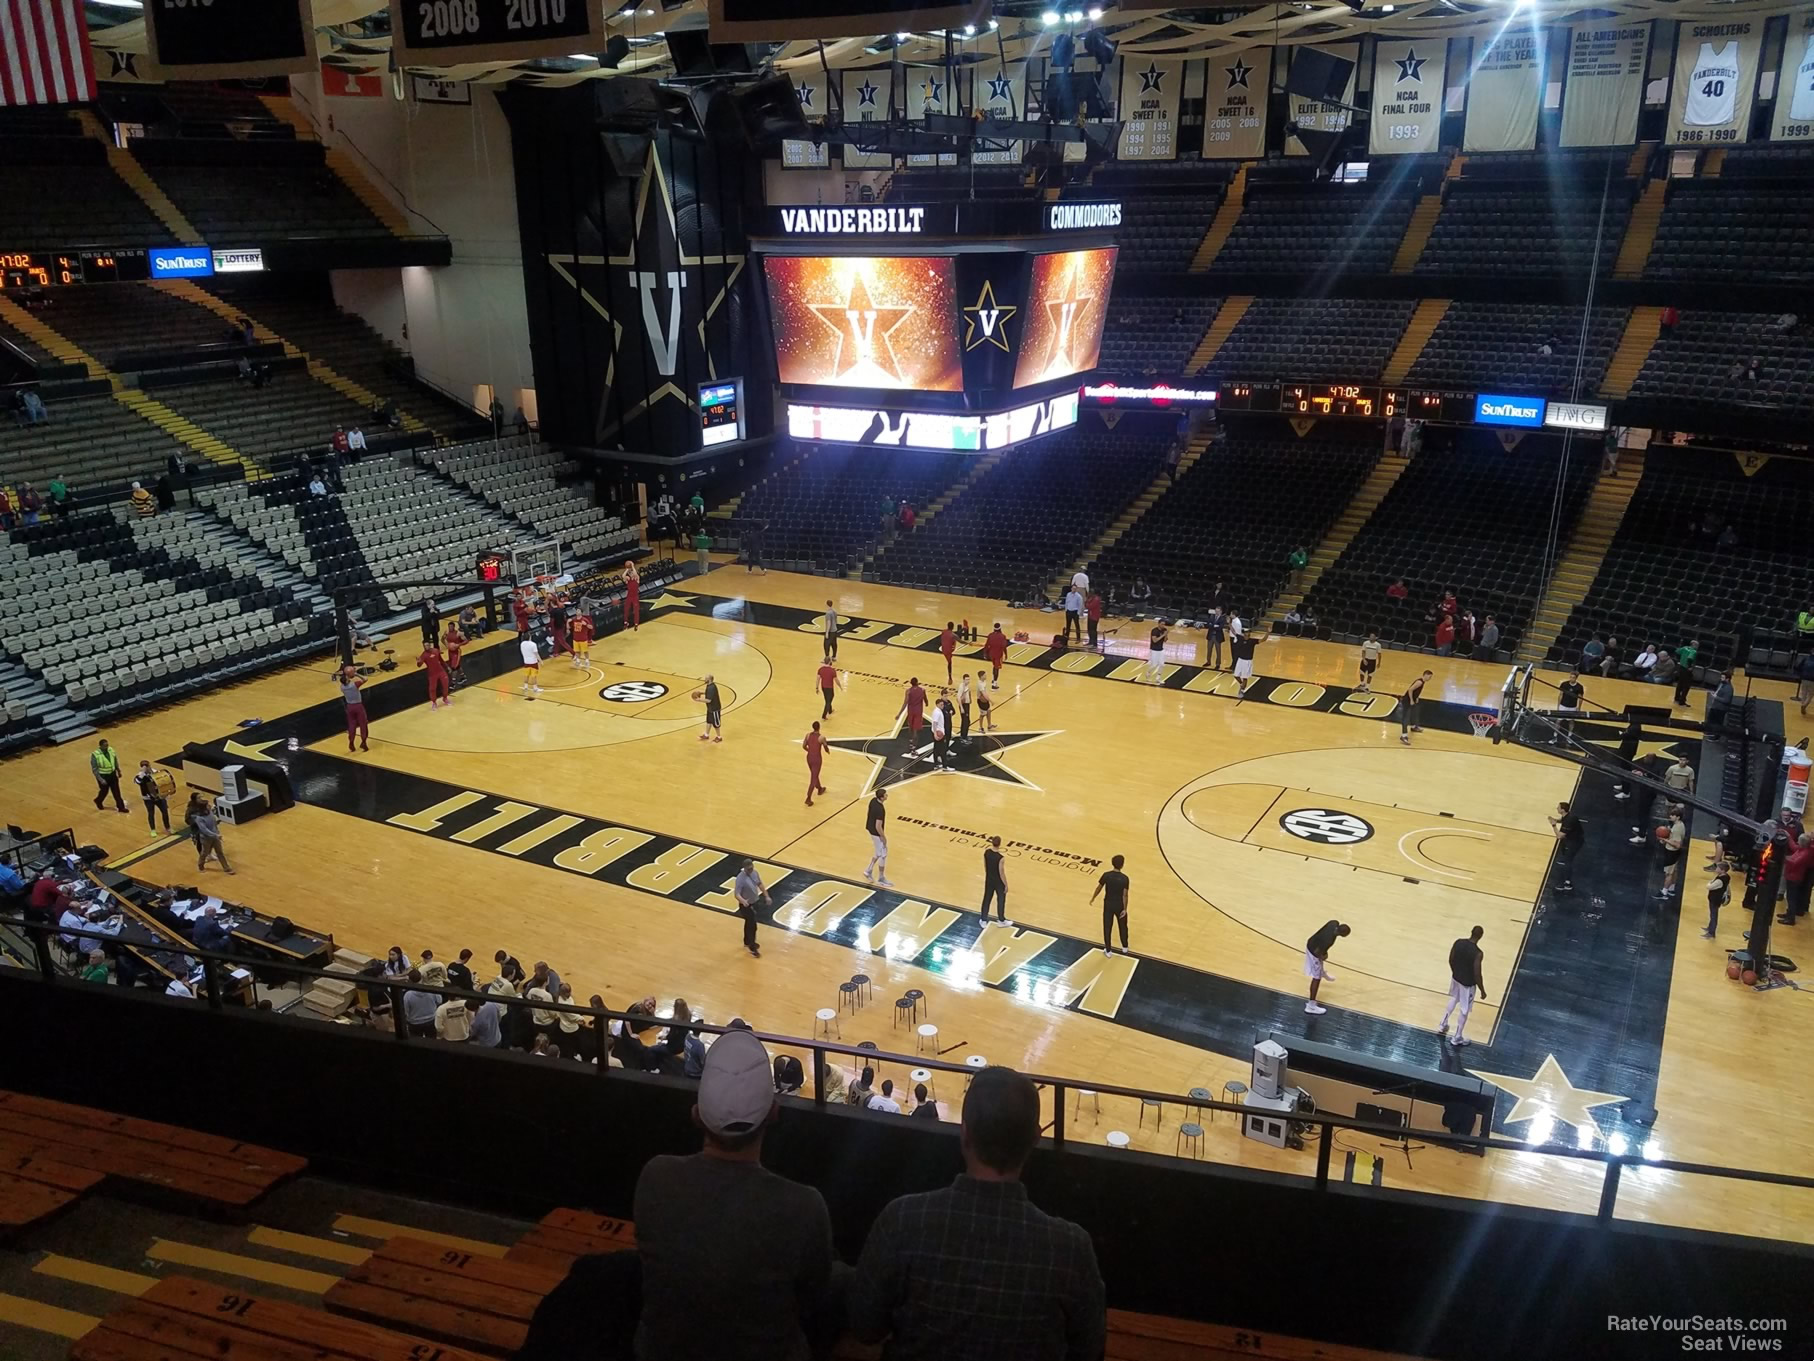 Vanderbilt Basketball Stadium